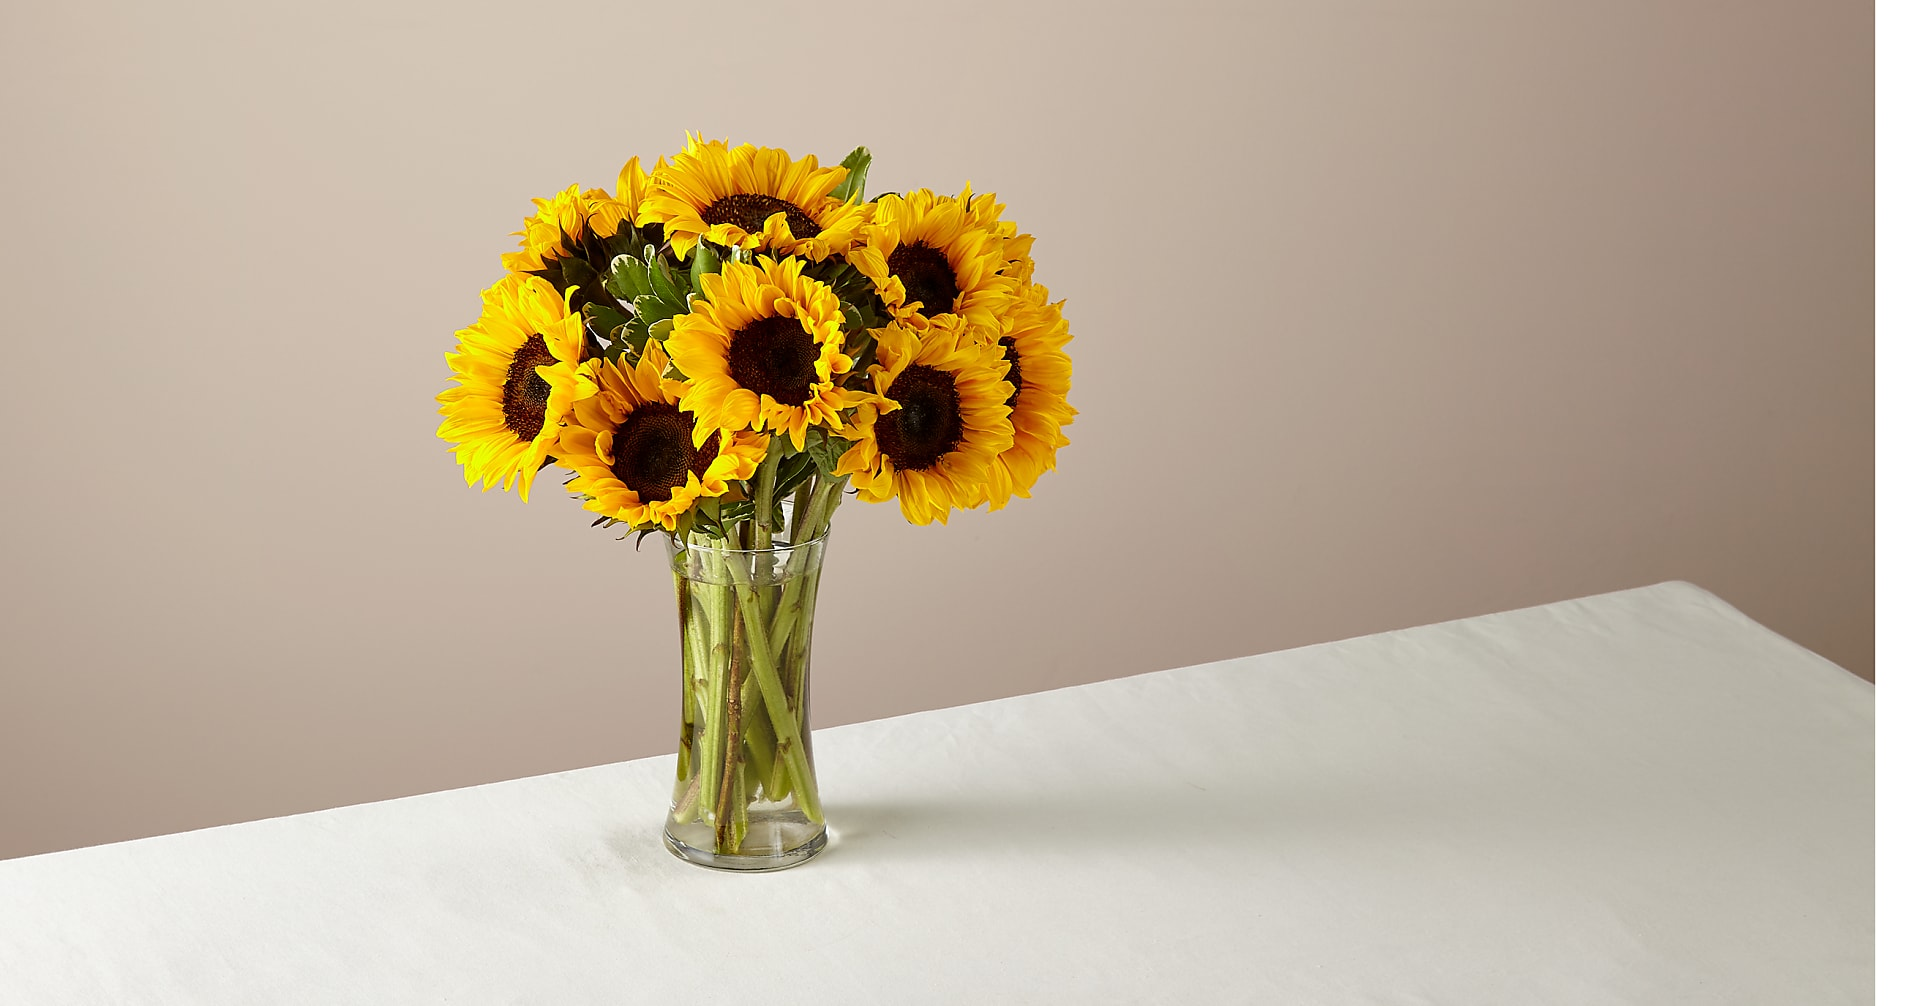 Honey Bee Sunflower Bouquet - Image 1 Of 4